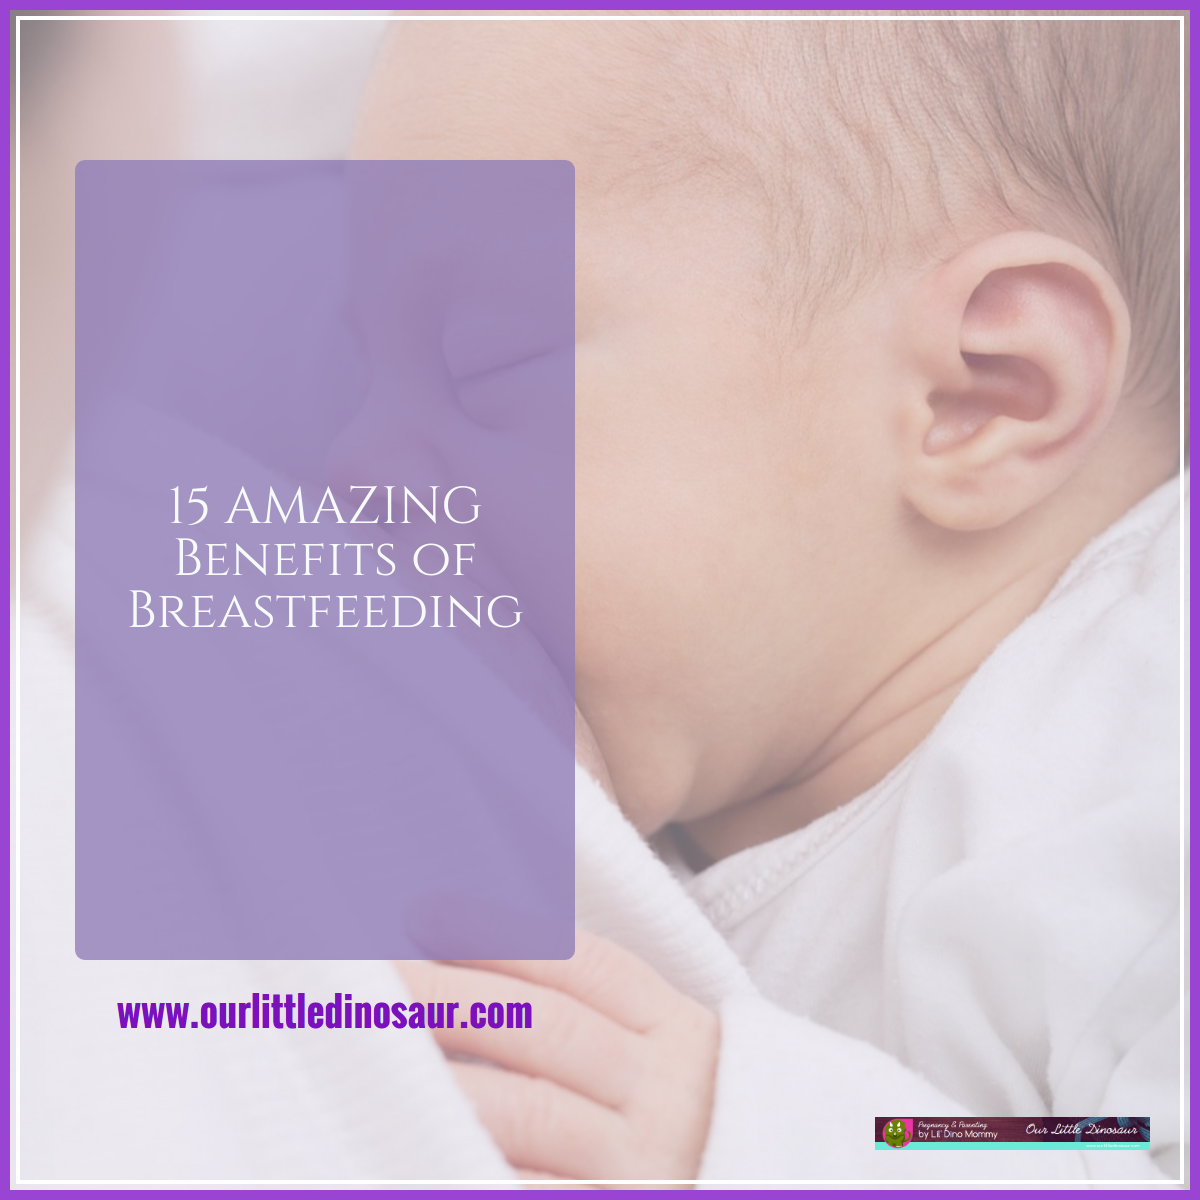 15 Amazing Benefits of Breastfeeding